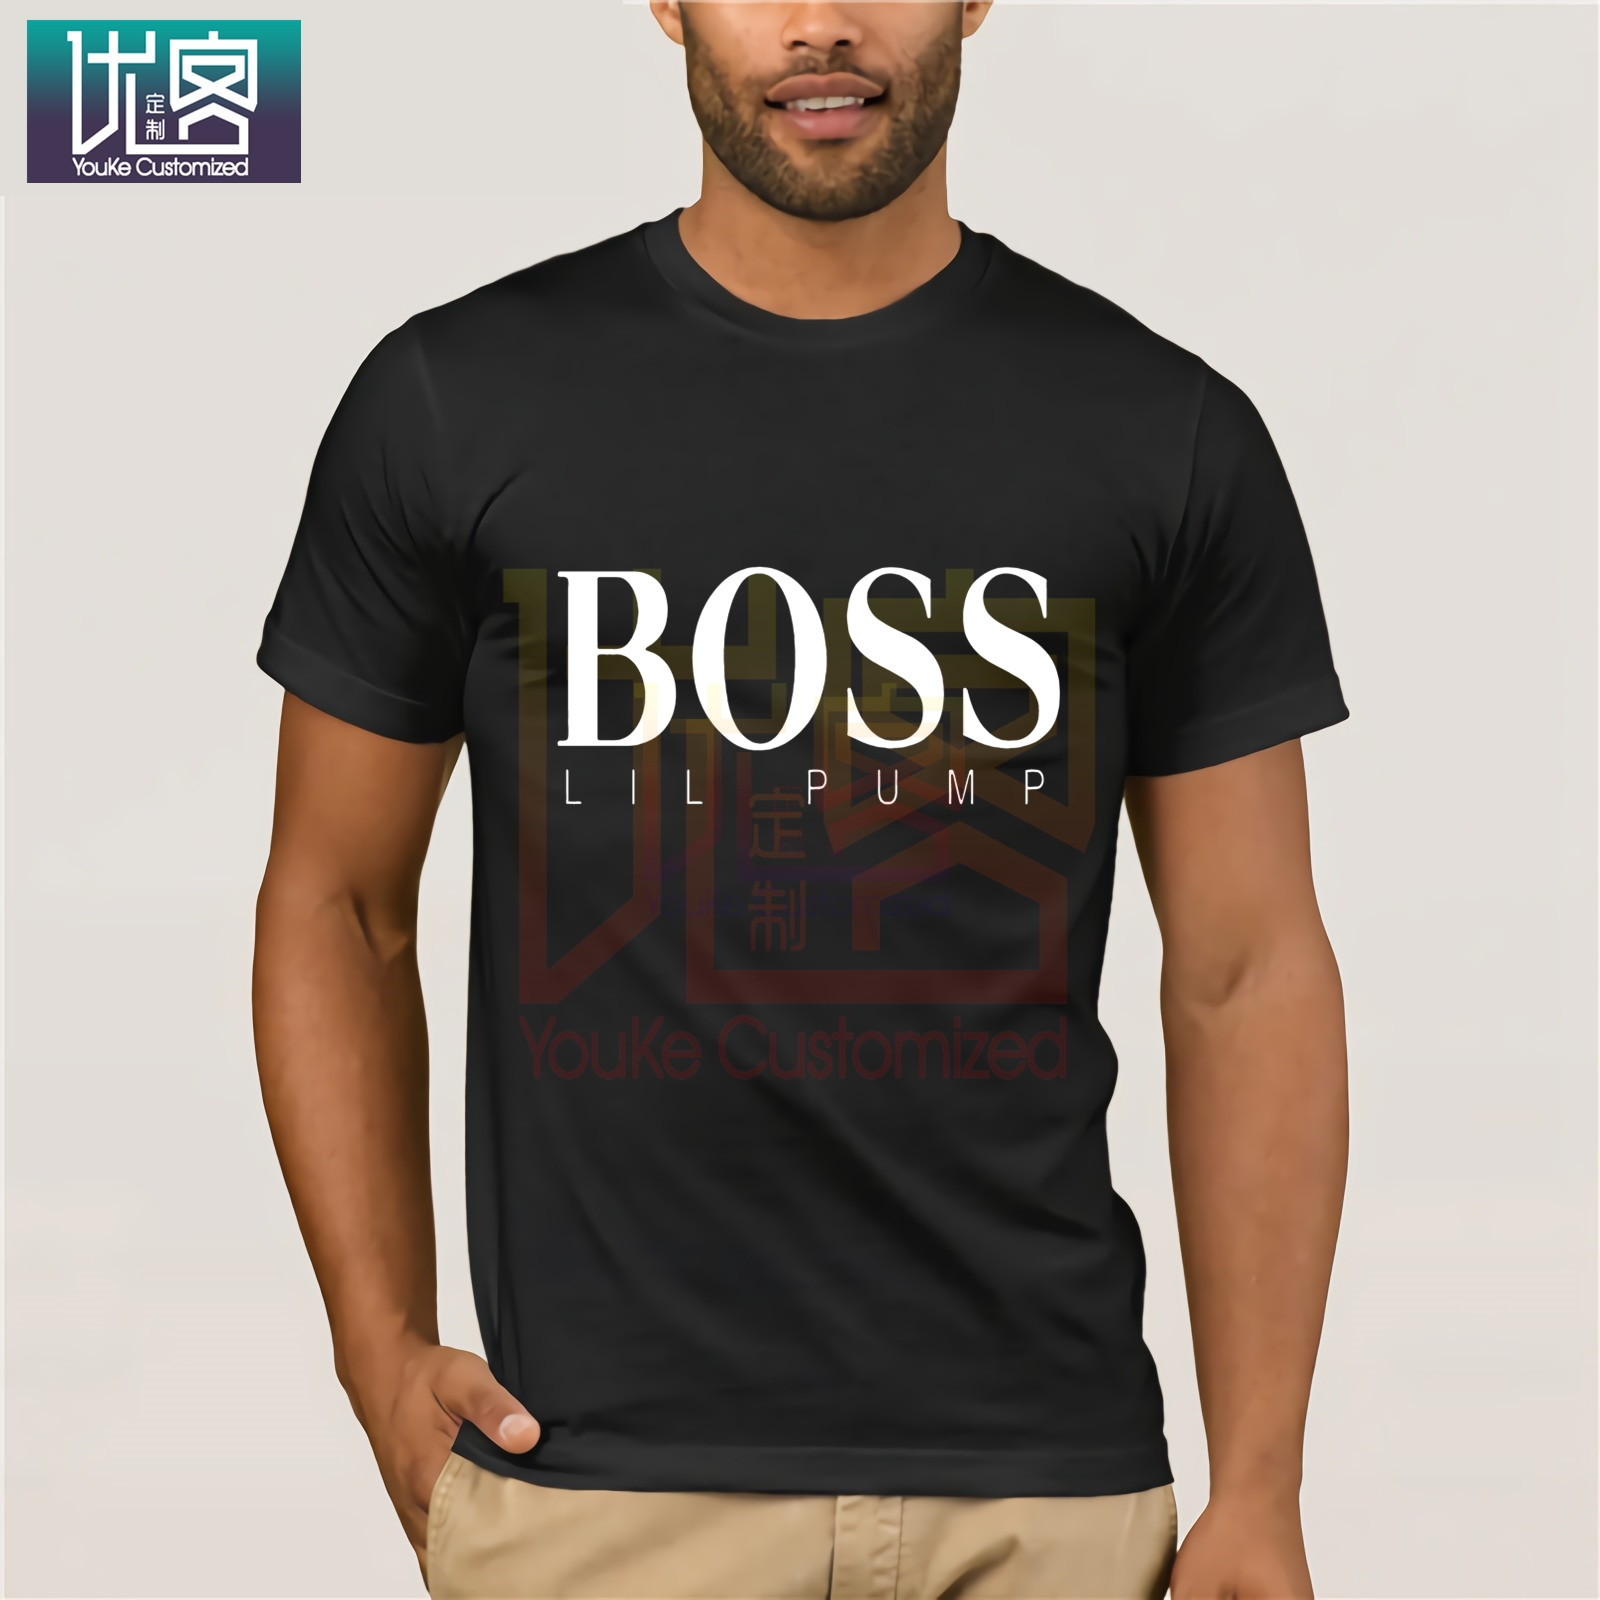 Men Casual Tee Shirts Boss Hip Hop Lil Pump Designer T Shirt Man Cotton Short Sleeve Tee Shirts Leisure Men Good Design Tshirts